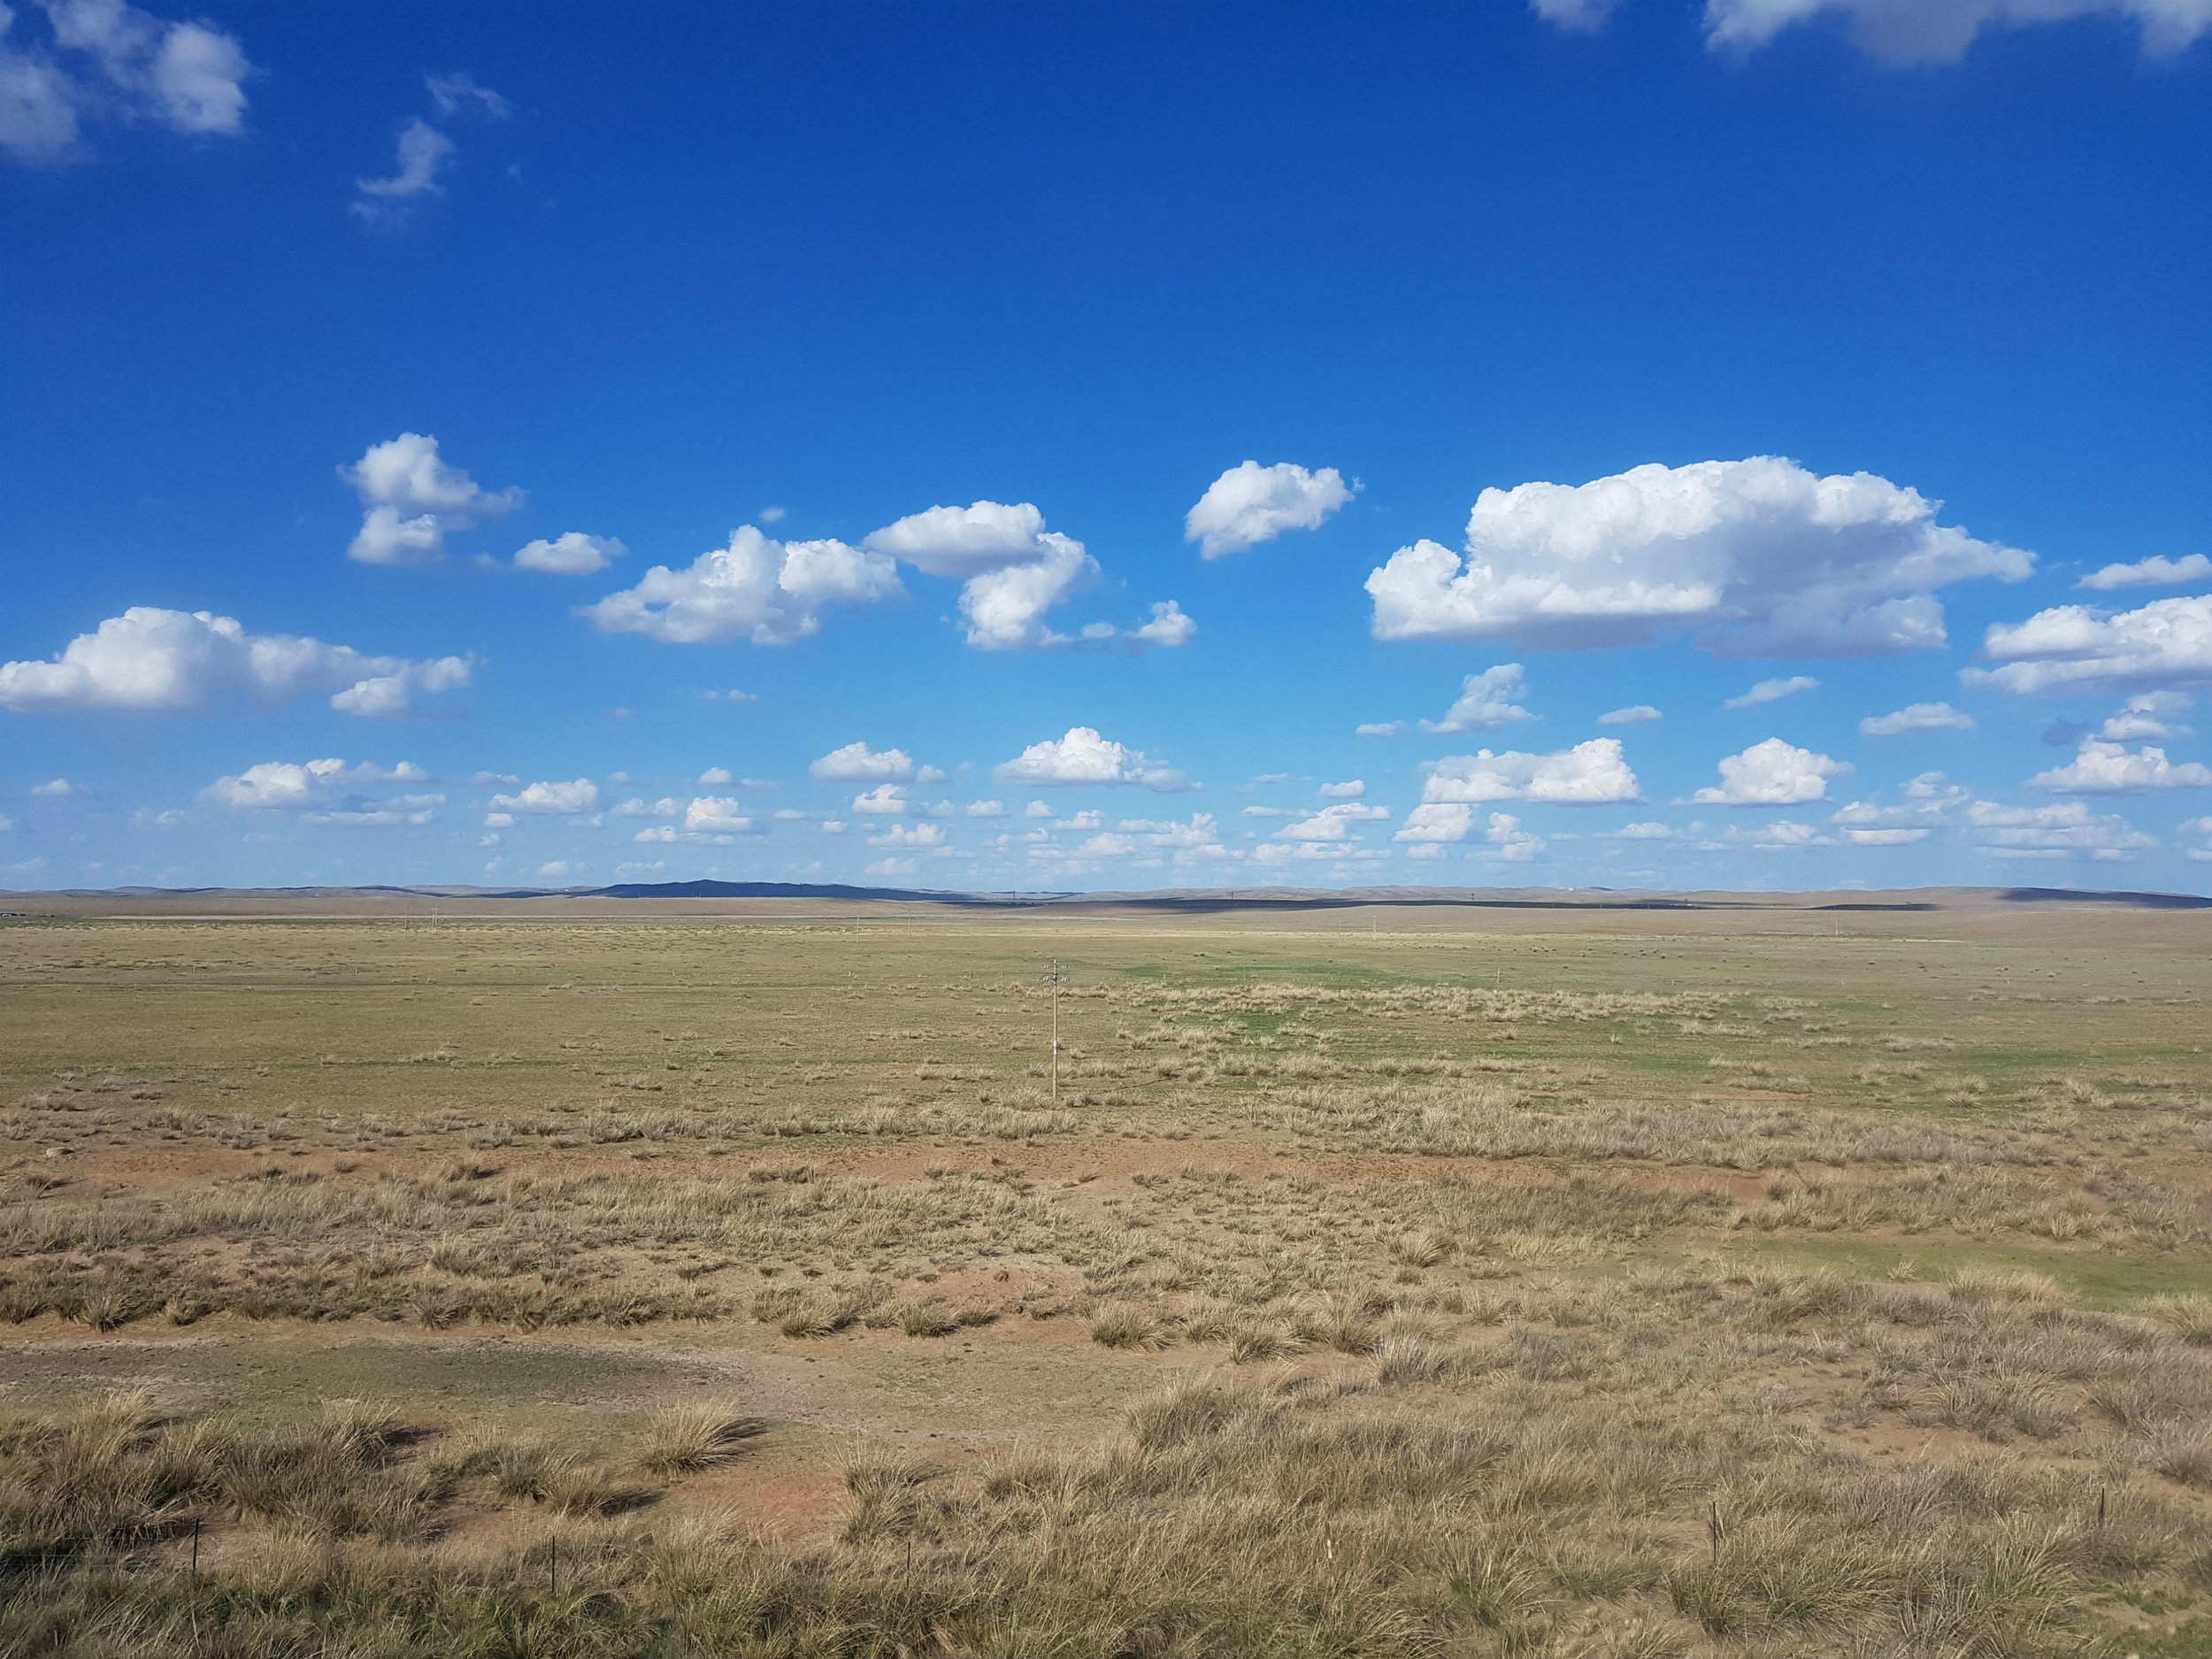 Mongolian steppe - just look at all that space